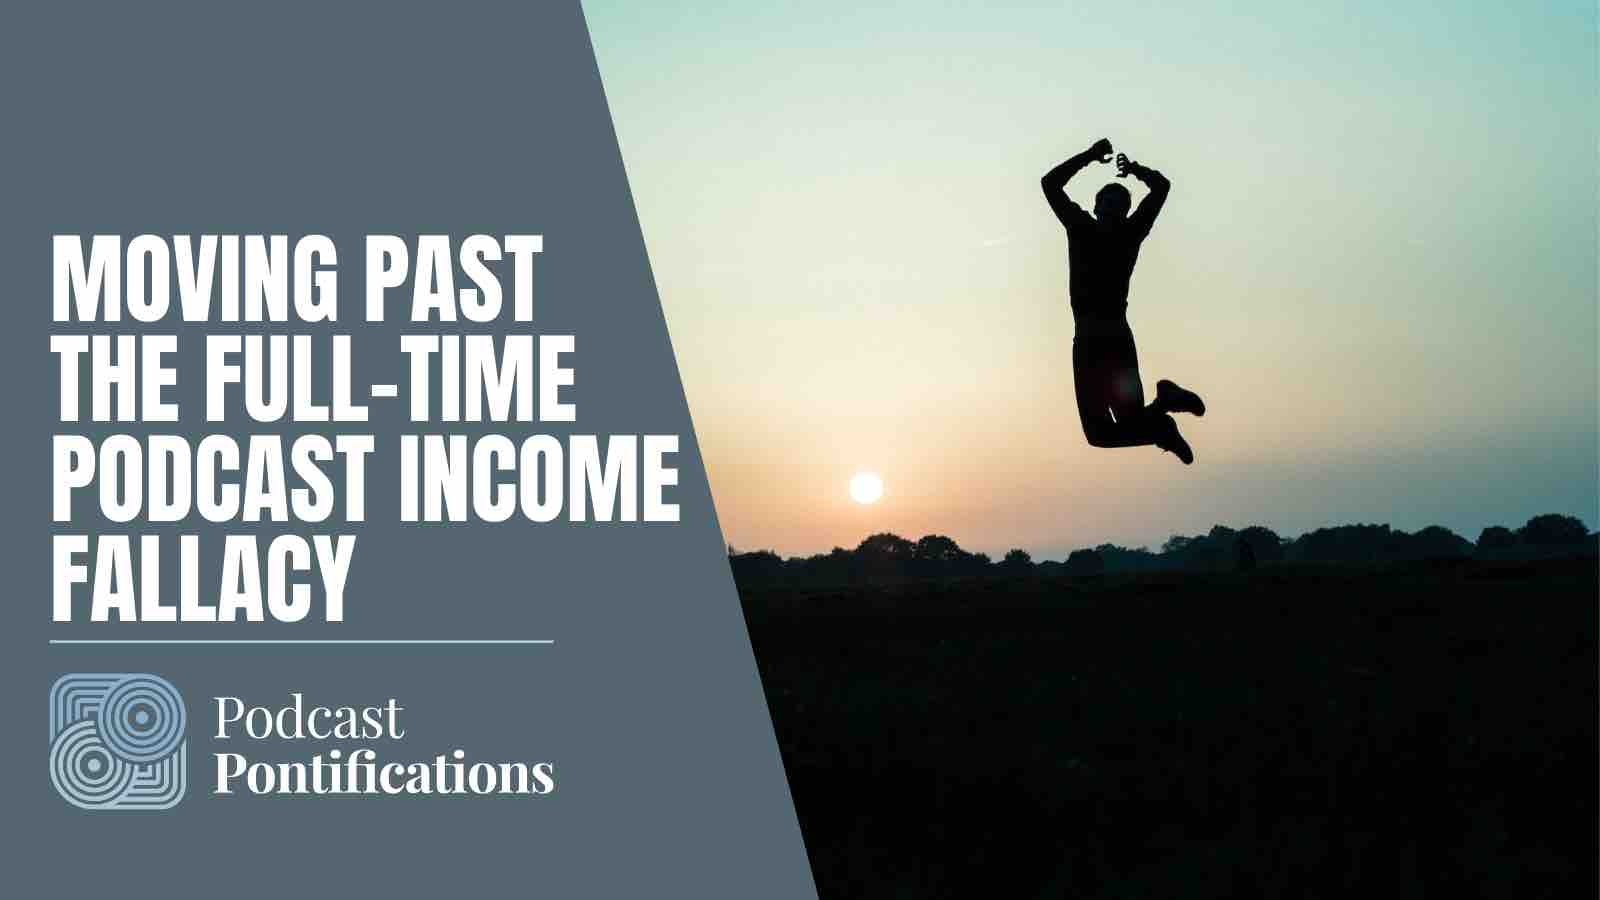 Moving Past The Full-Time Podcast Income Fallacy